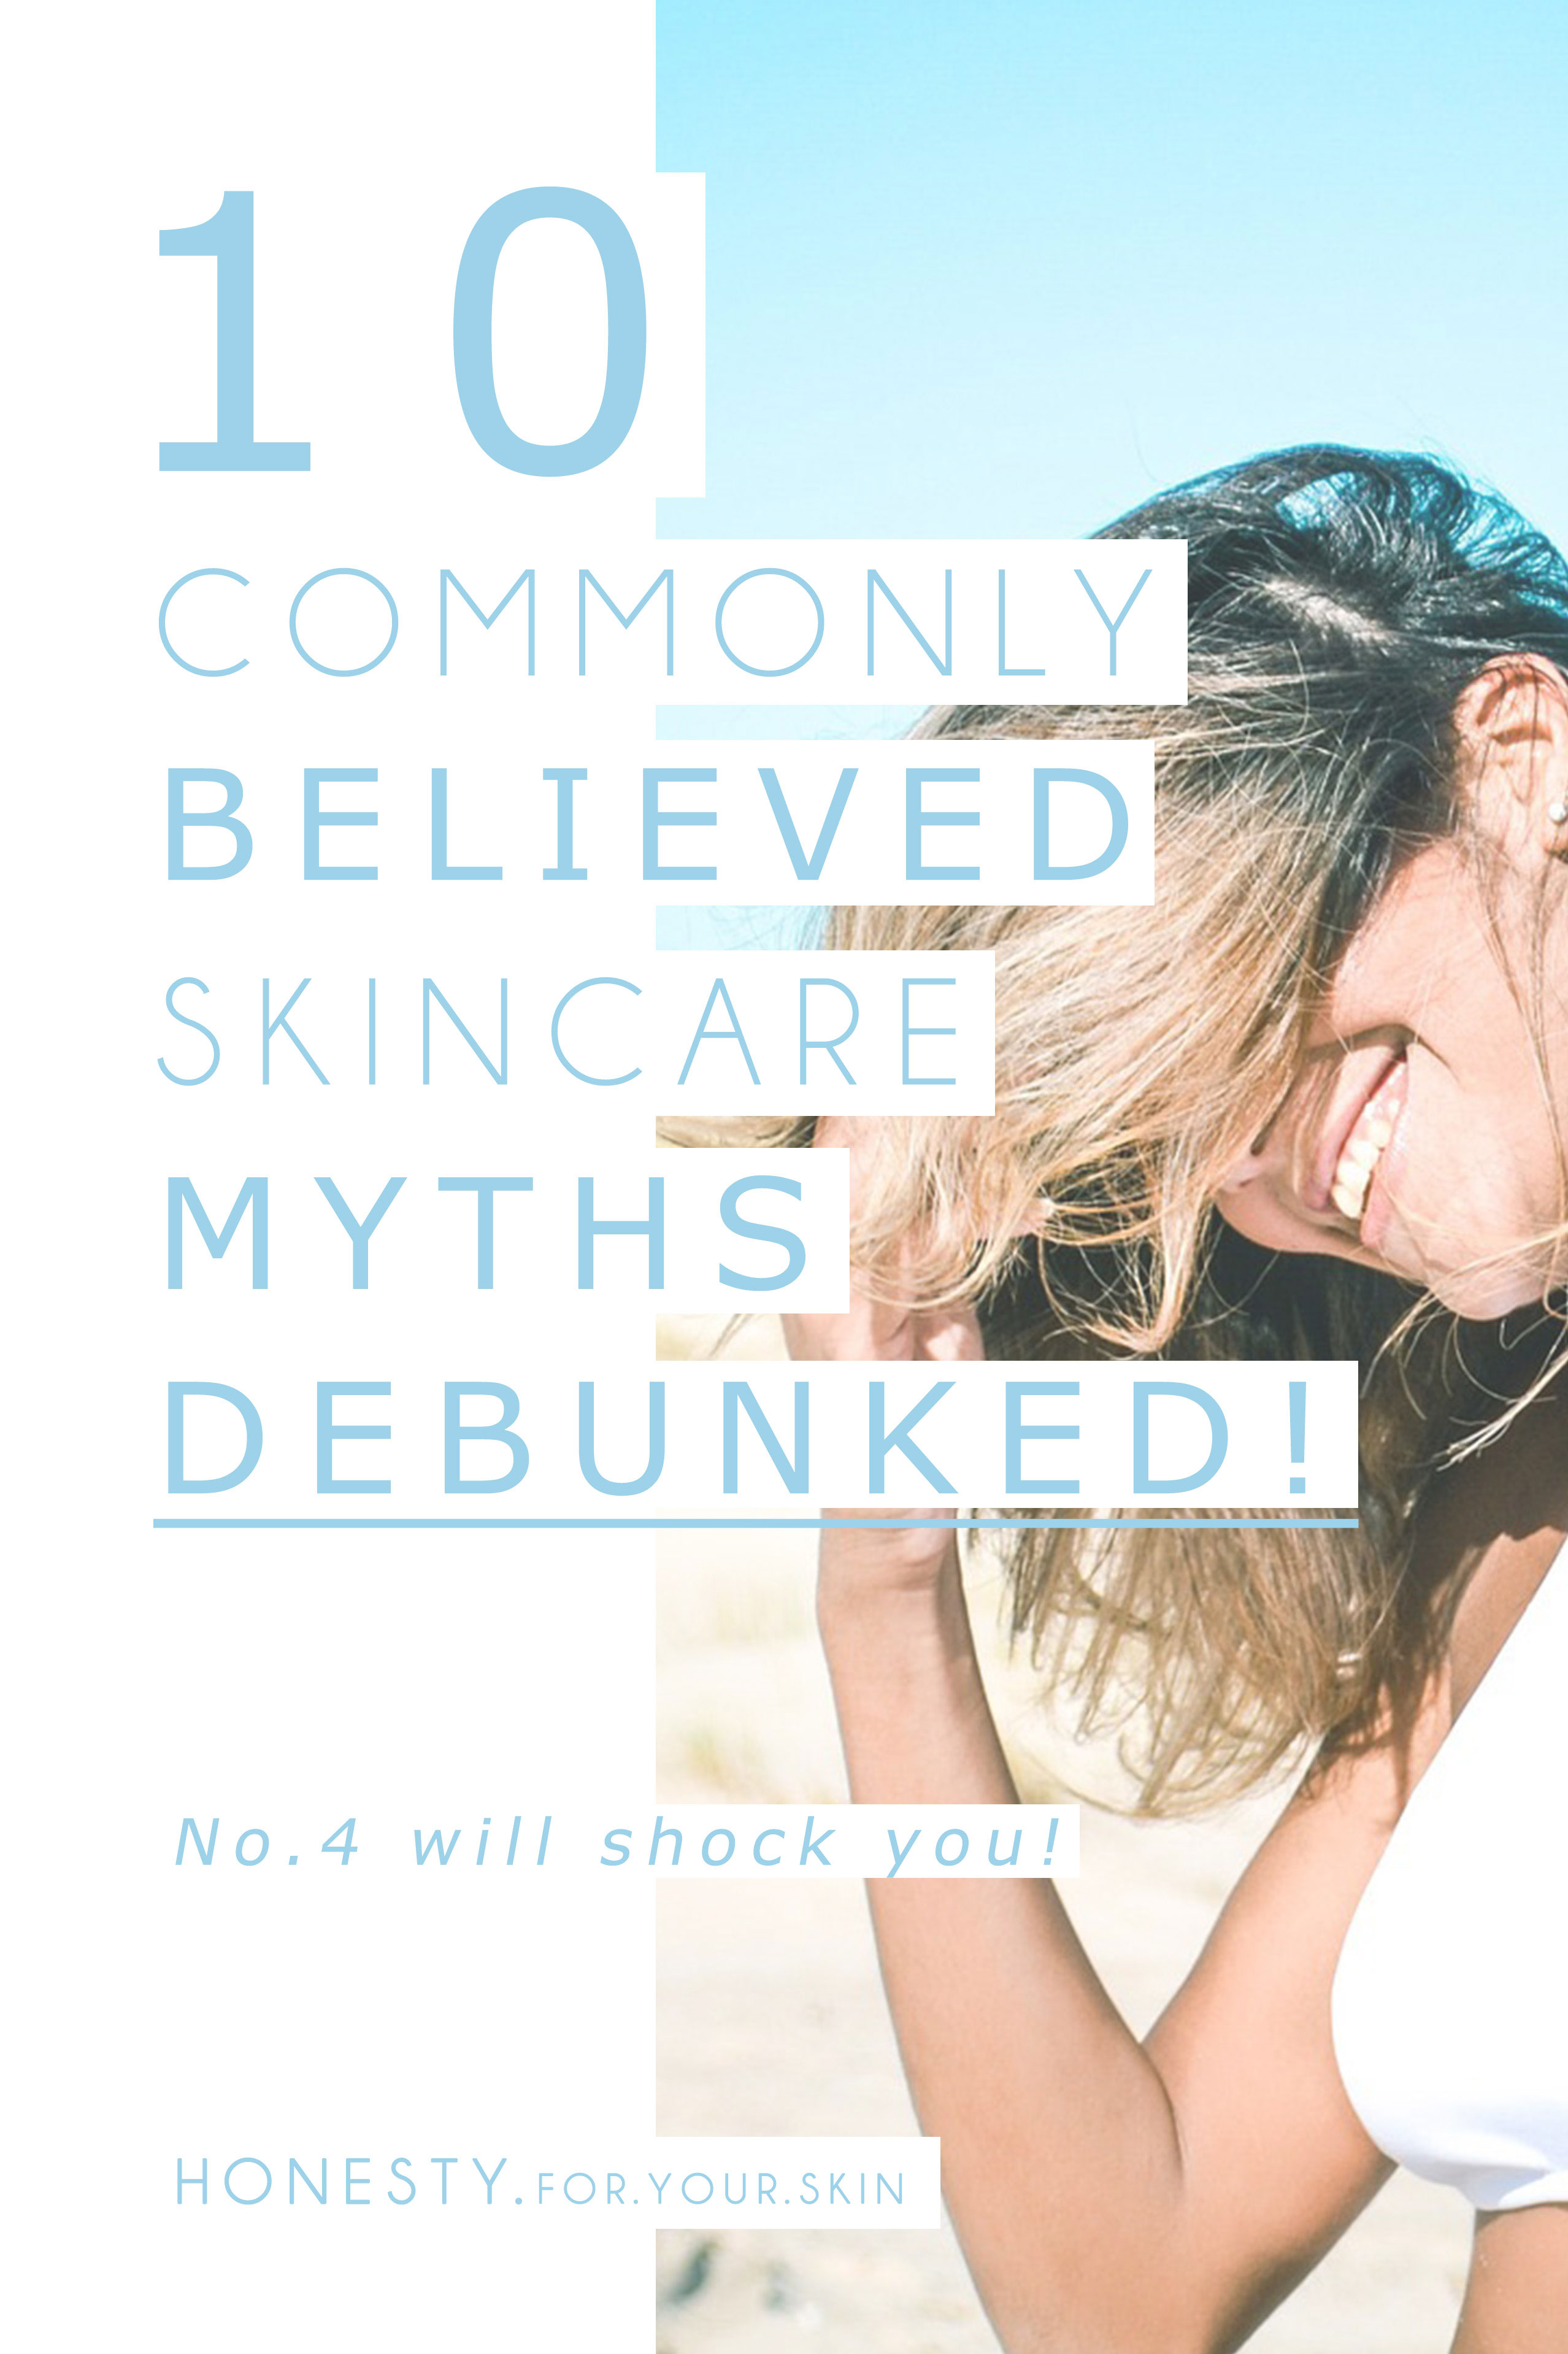 If If someone told you that taking a good ol' dollop of horse poop and rubbing it into your skin was not only good for you but anti-aging… would you do it? Seriously, would you be tempted? [It's ok if you are – no judgement!] Sometimes the 'wackier' the skincare advice, the more we believe it, because 'it sounds so wild it has to work right'? There is some SUPER questionable skincare advice out there, skincare myths could be taking your skin through the 'ringer'. Don't let one of these 10 skincare myths be the reason why… http://wp.me/p6LuQS-xs